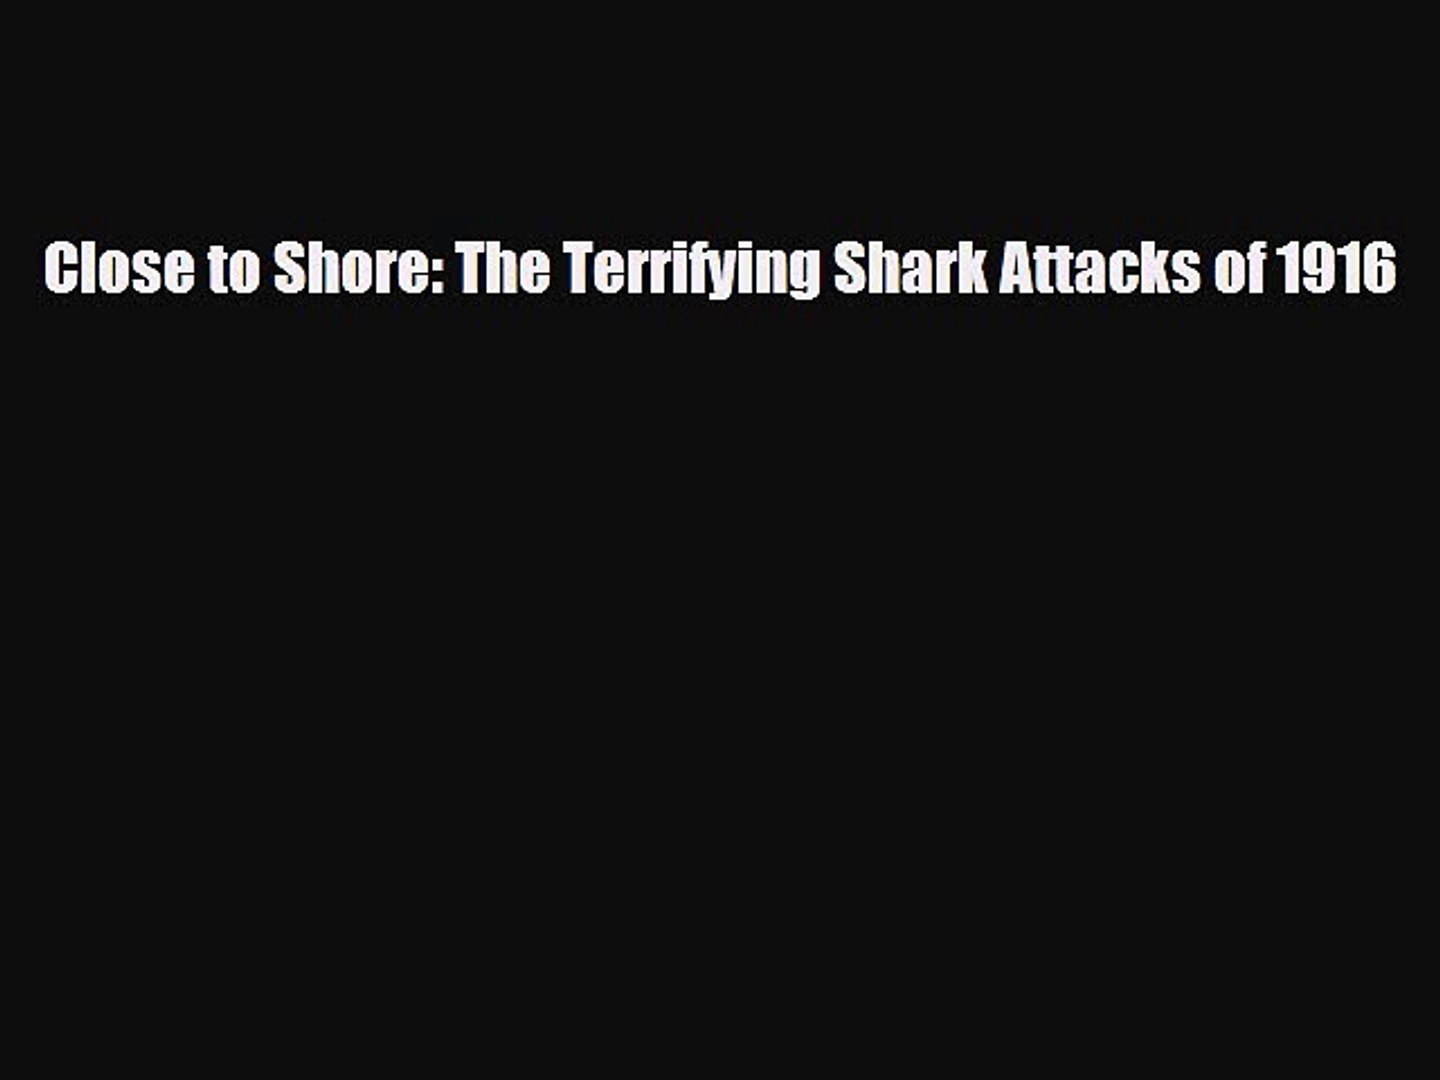 Download ‪Close to Shore: The Terrifying Shark Attacks of 1916 PDF Free